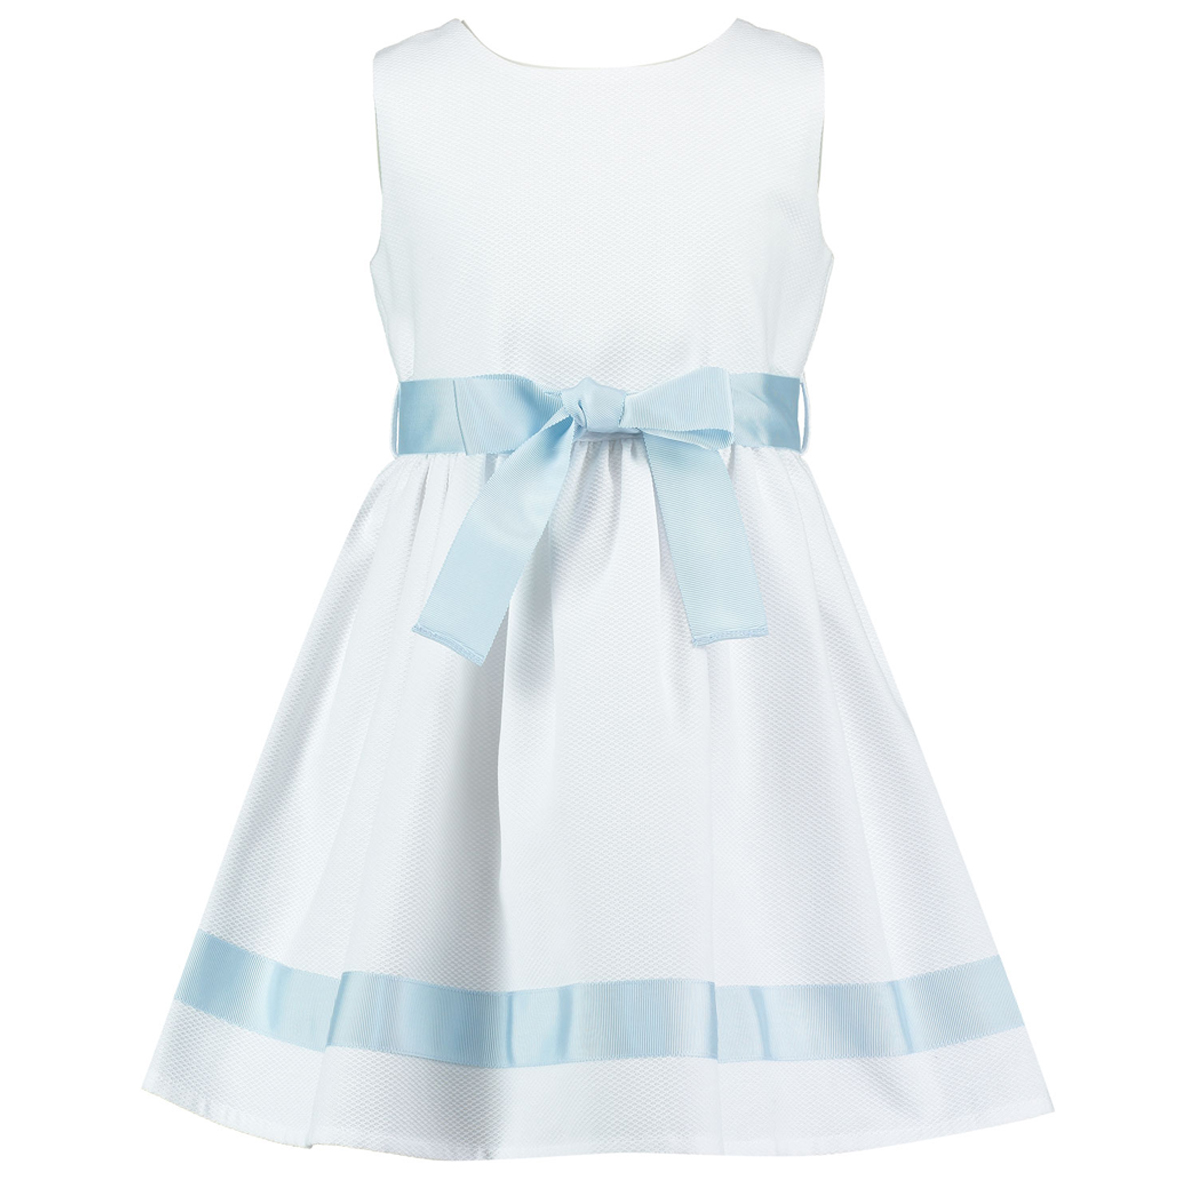 Holly Hastie Dress Charlotte In White Blue Pique